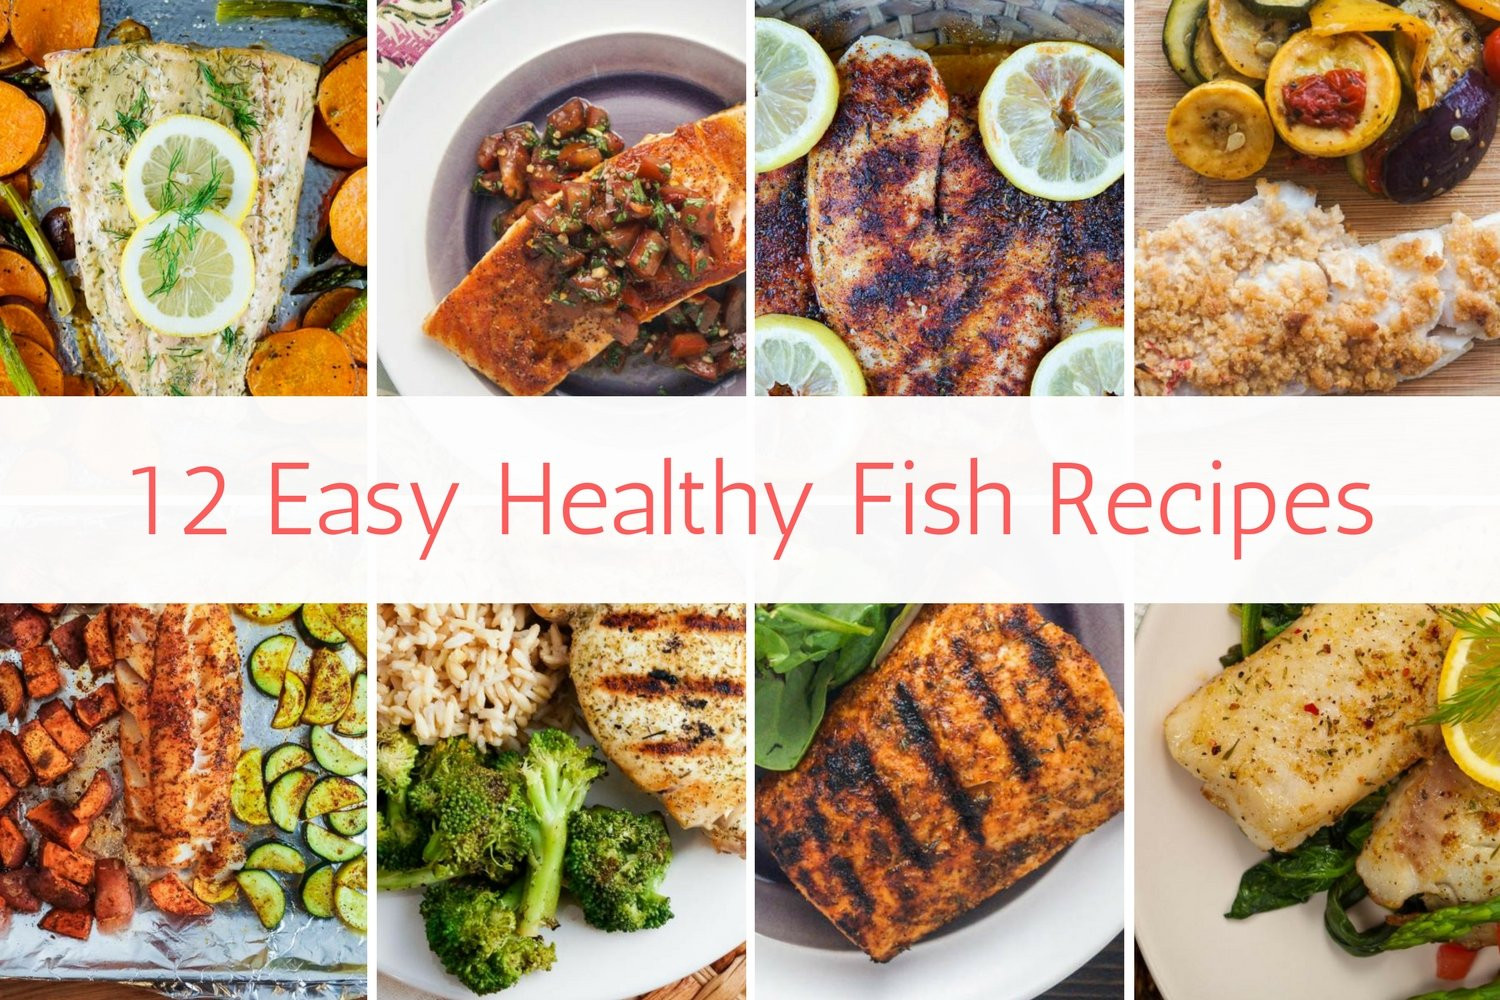 Healthy Recipes With Fish  12 Easy Healthy Fish Recipes Slender Kitchen